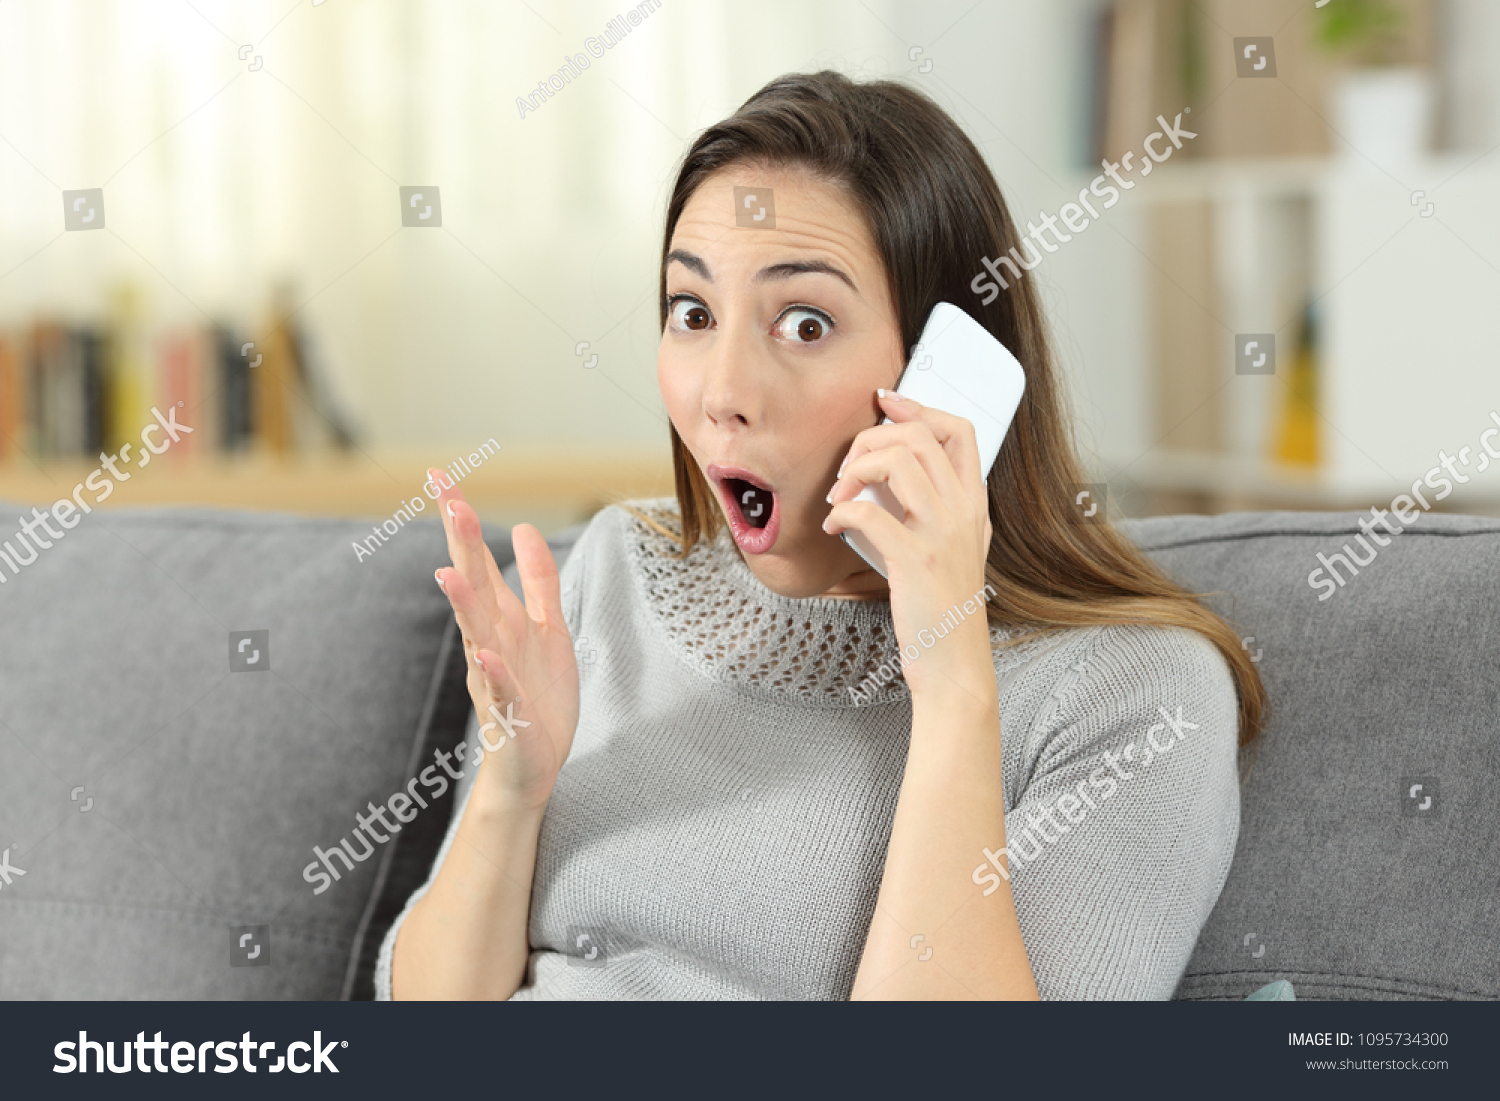 stock-photo-amazed-woman-on-the-phone-lo